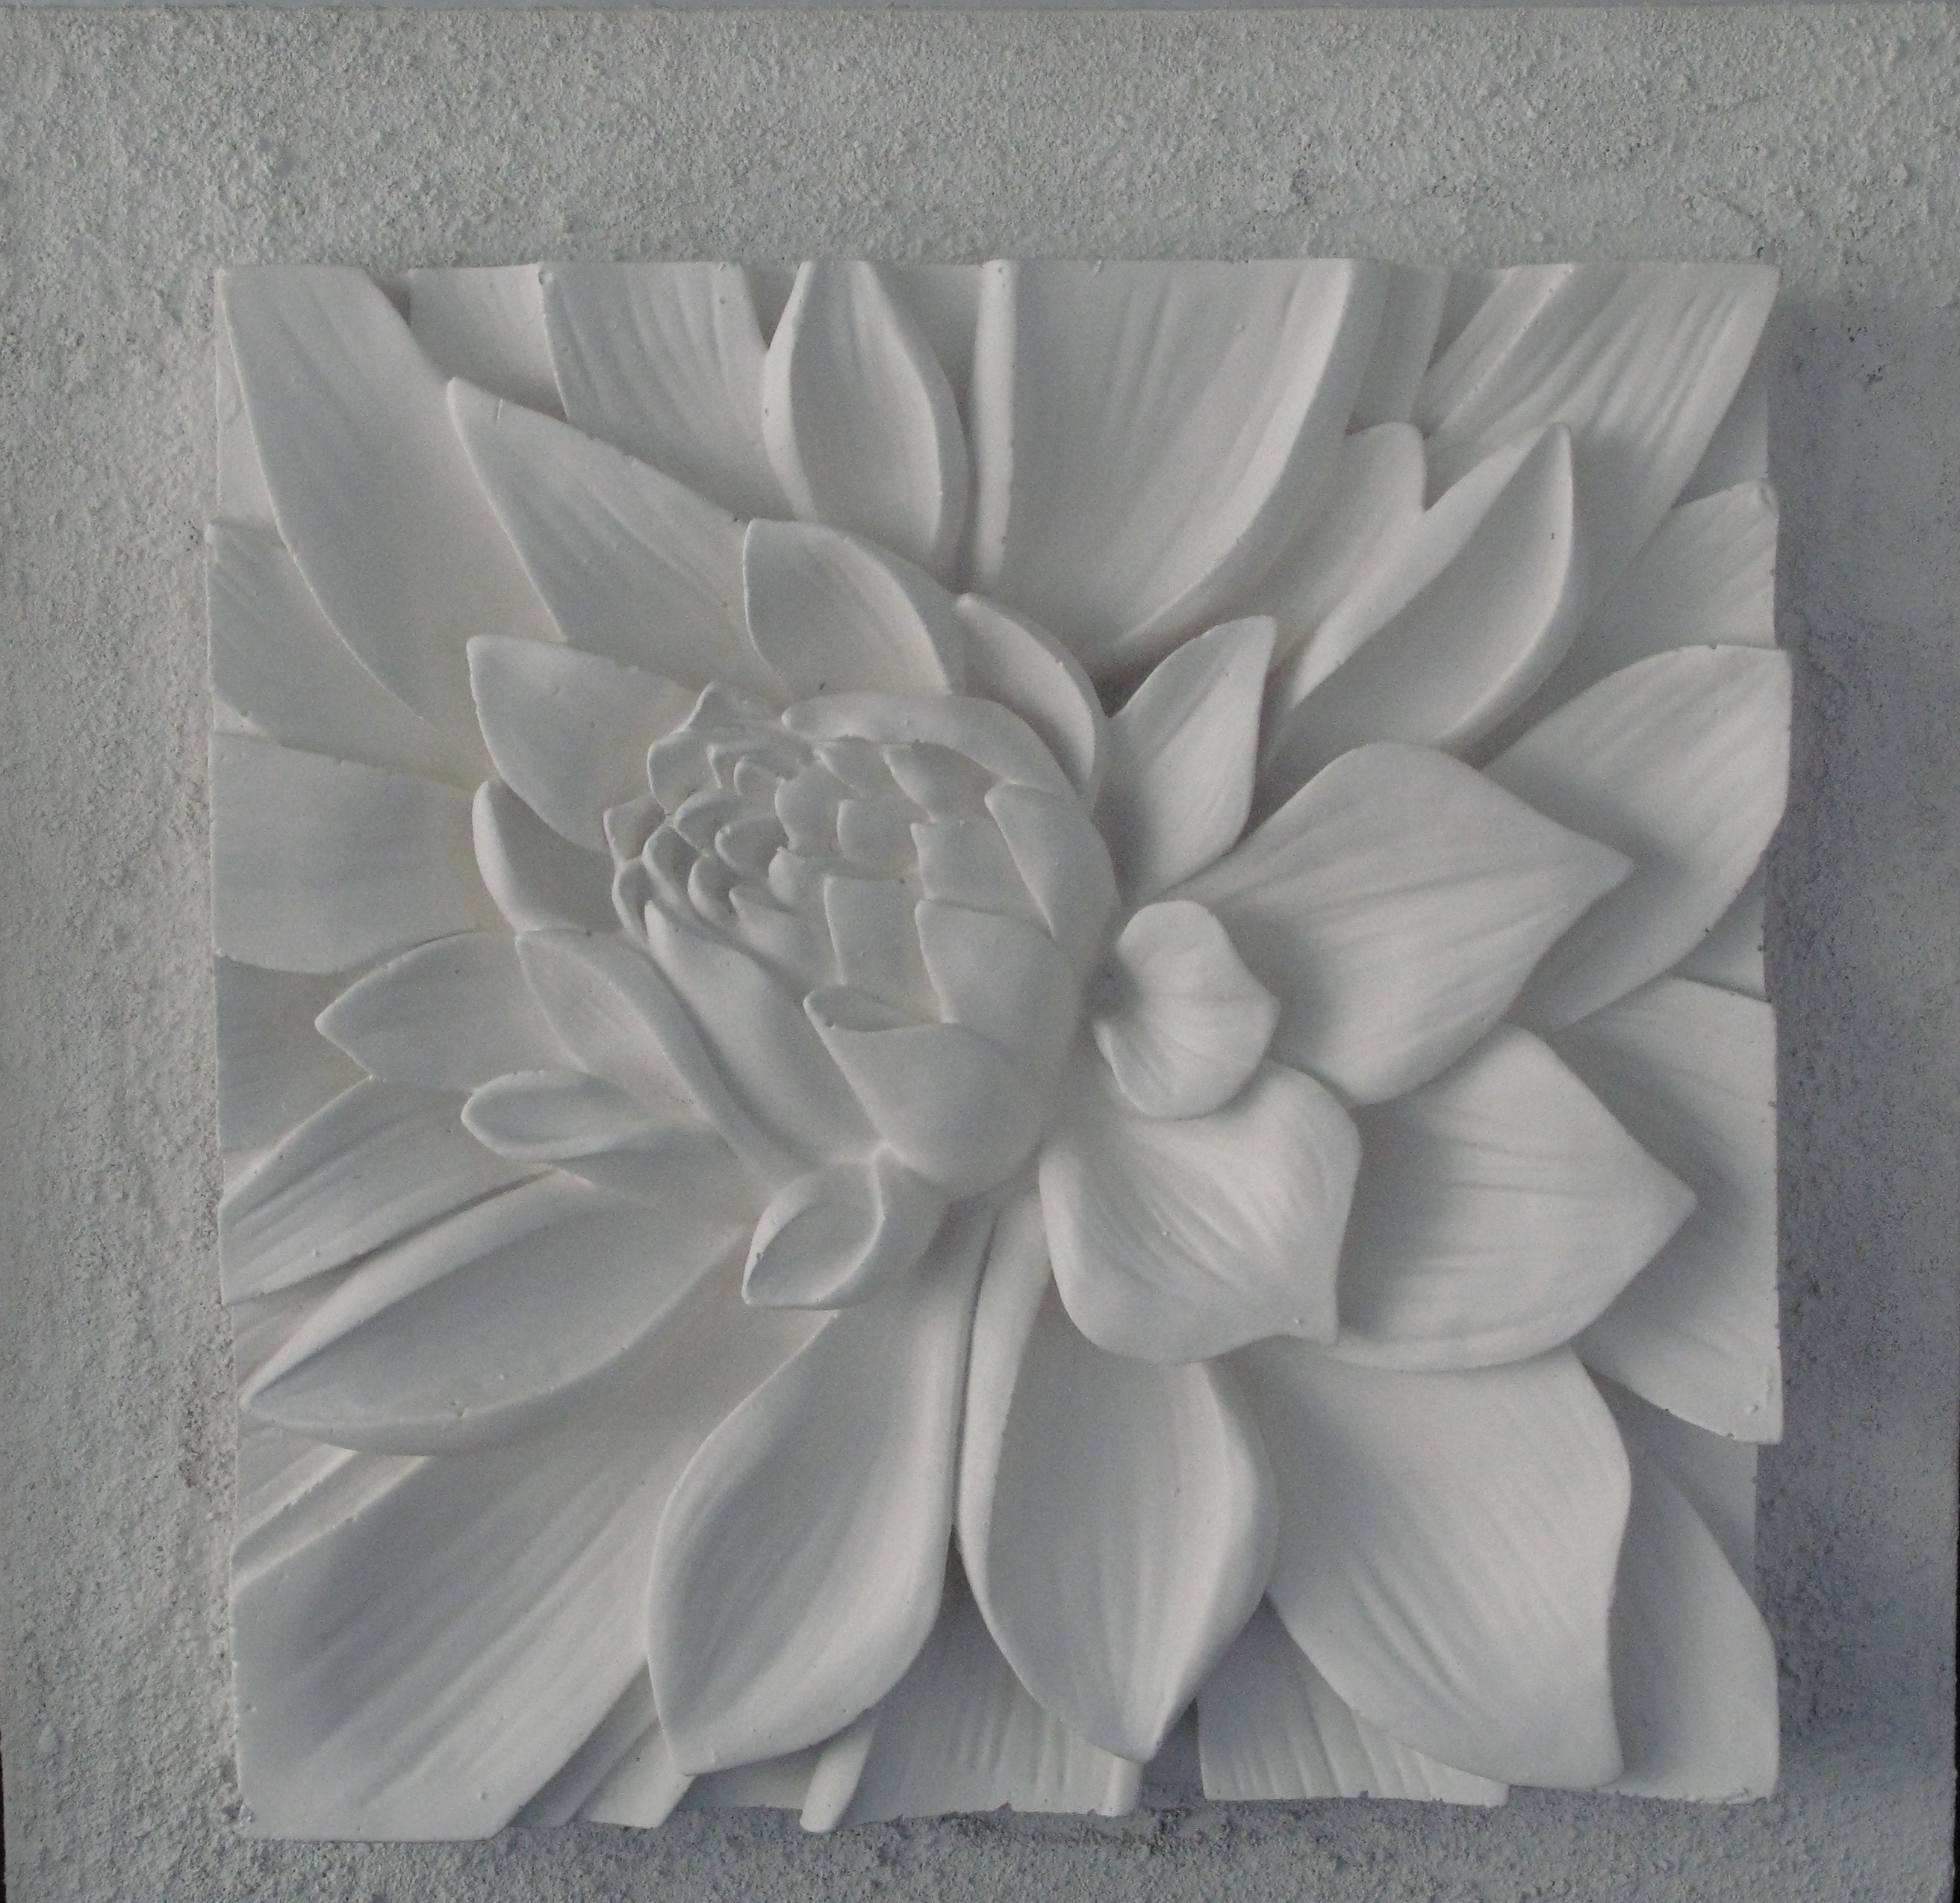 Widely Used Plaster On Canvas 3d Art With Textured Background (View 4 of 15)